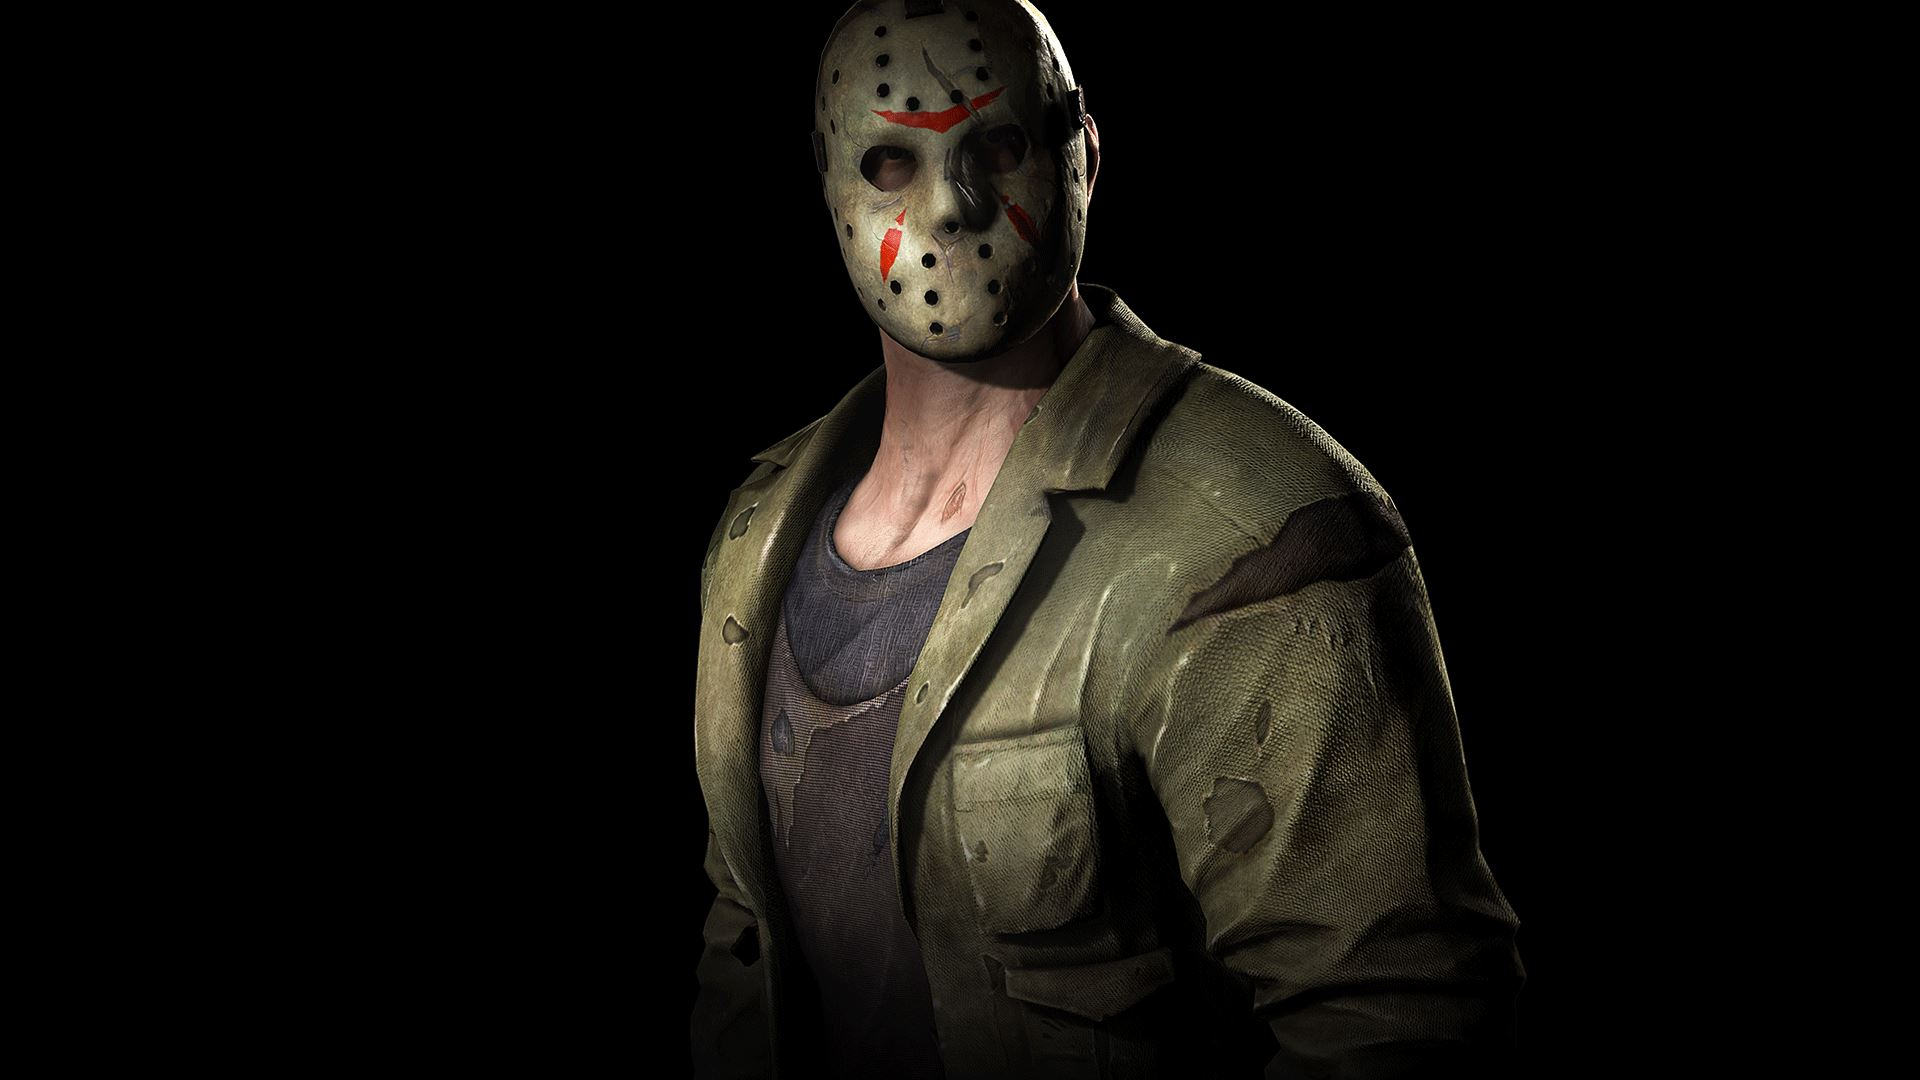 I Love Jason Wallpapers : Mortal KombatxReview: 5 Things I Love and Hate About Mortal KombatxGAMERS DEcIDE